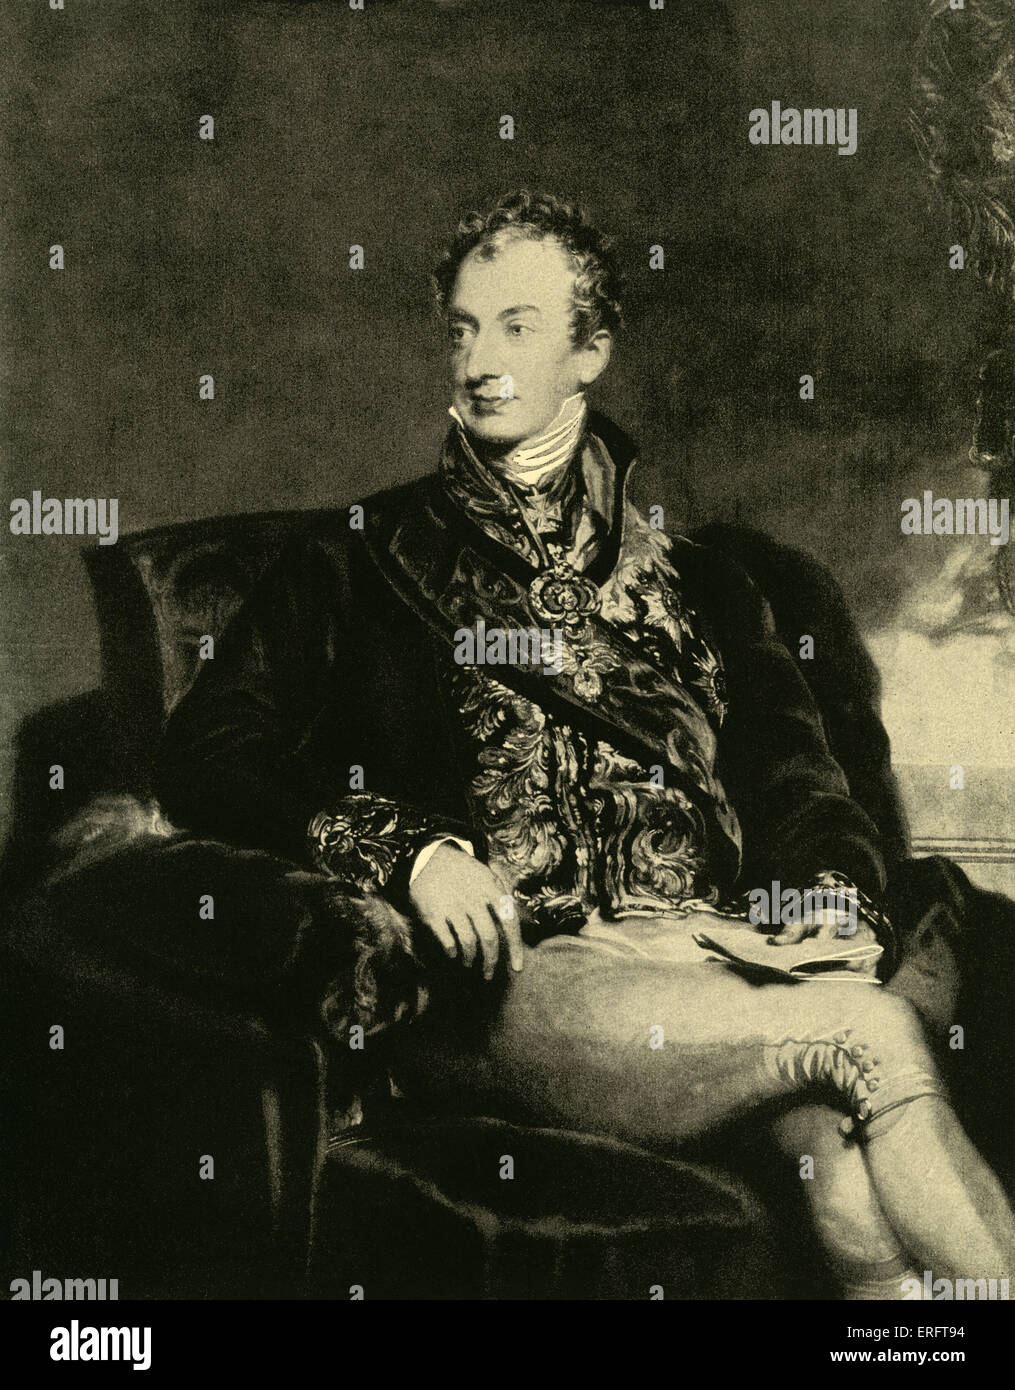 Prince Klemens Wenzel von Metternich - engraving by Samuel Cousins after painting by Sir Thomas Lawrence. SL, English - Stock Image